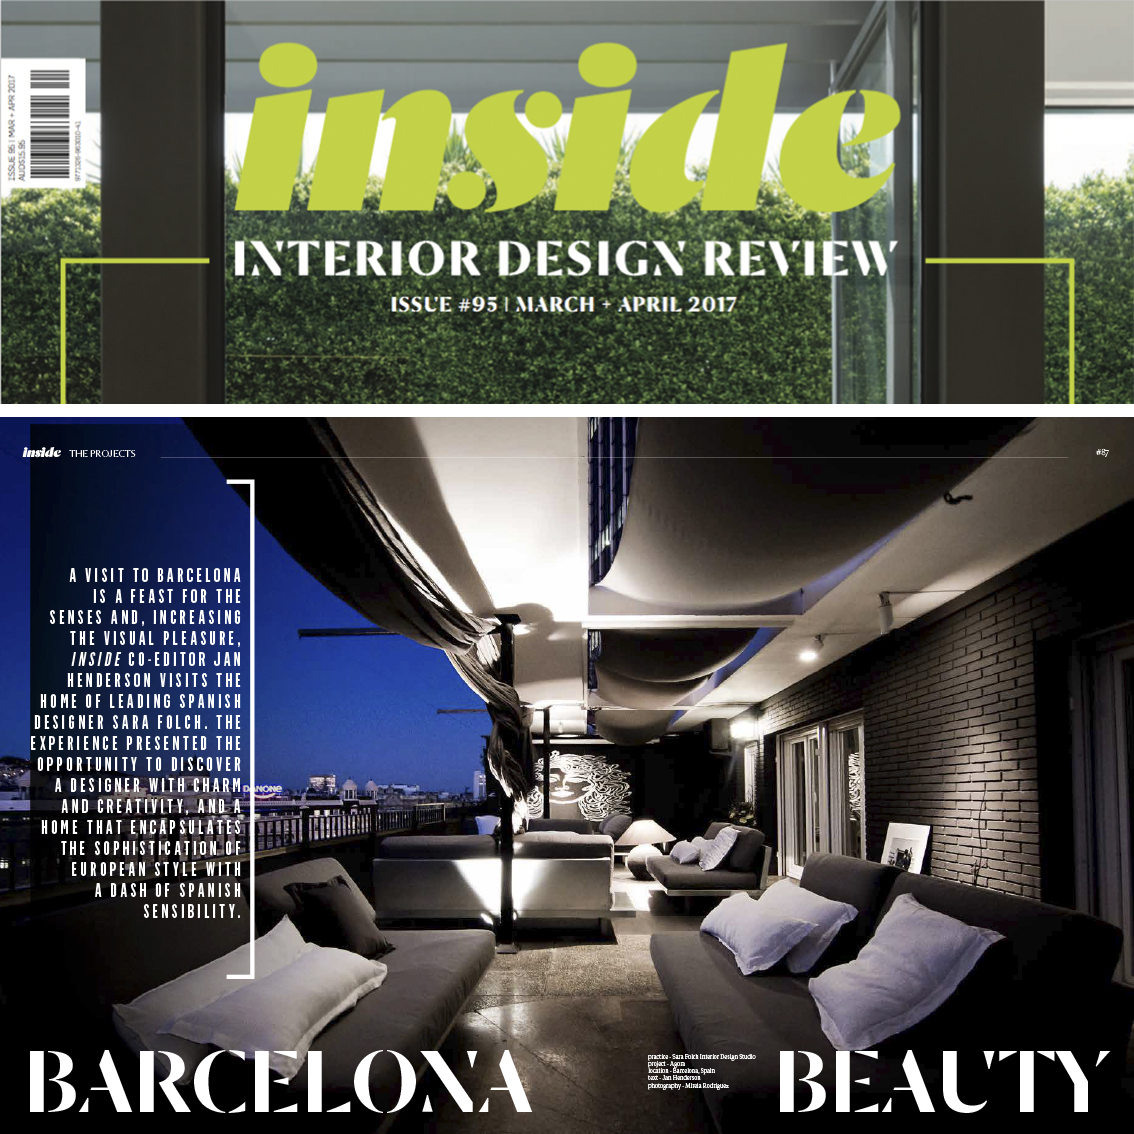 We receive the visit of Inside Interior Design Review